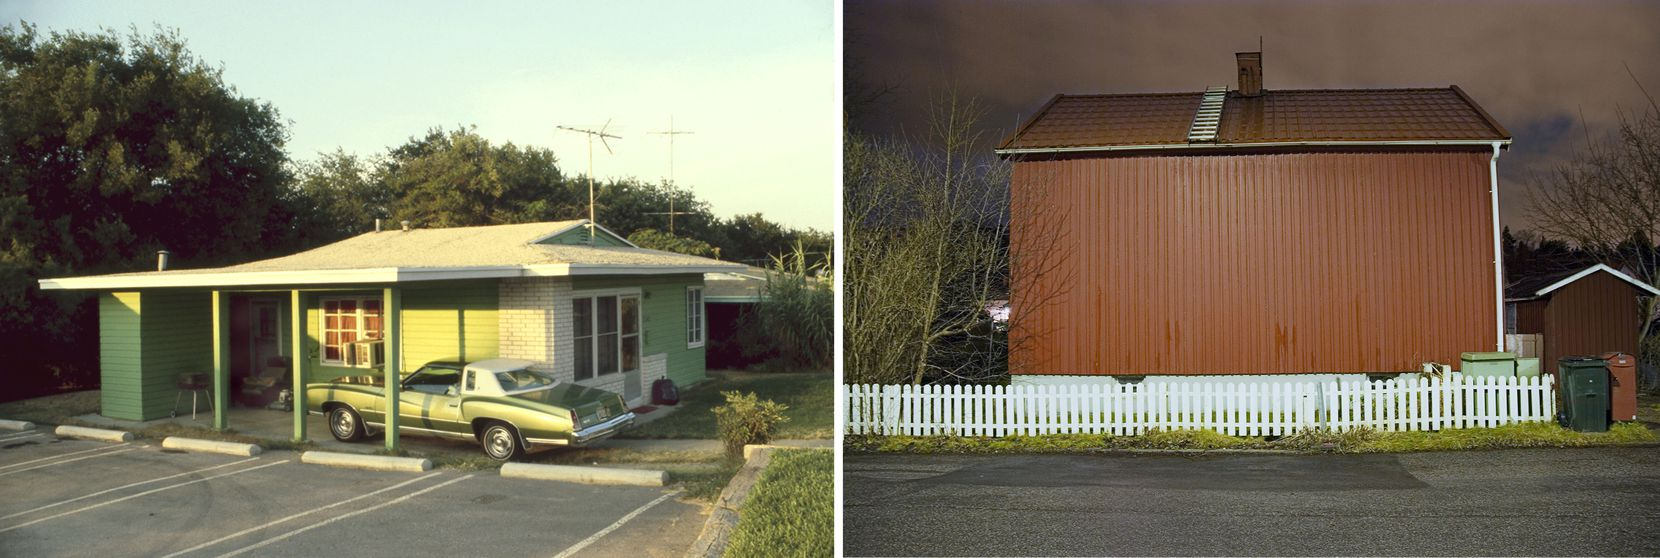 (LEFT) Christina Patoski, Green On Green, 1978; (RIGHT) Joakin Eneroth, Swedish Red, Comfortably Secure, 2006